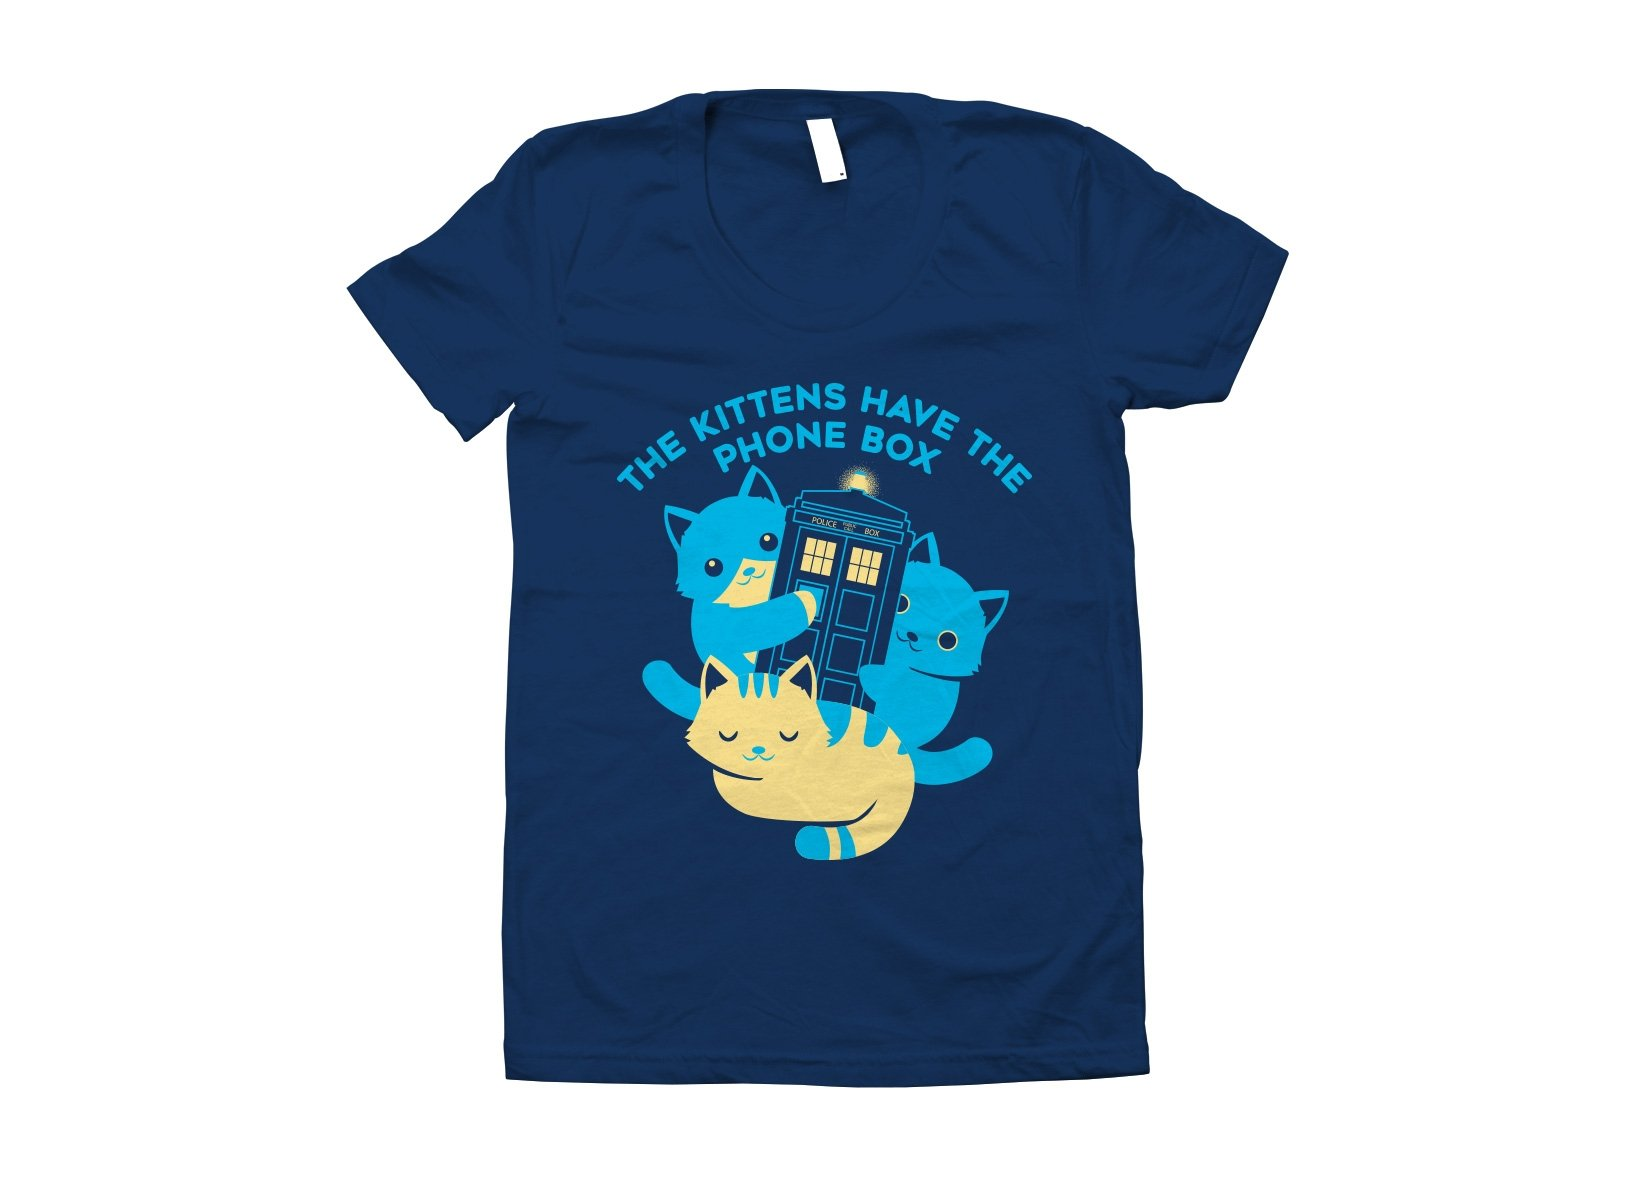 The Kittens Have The Phone Box on Juniors T-Shirt